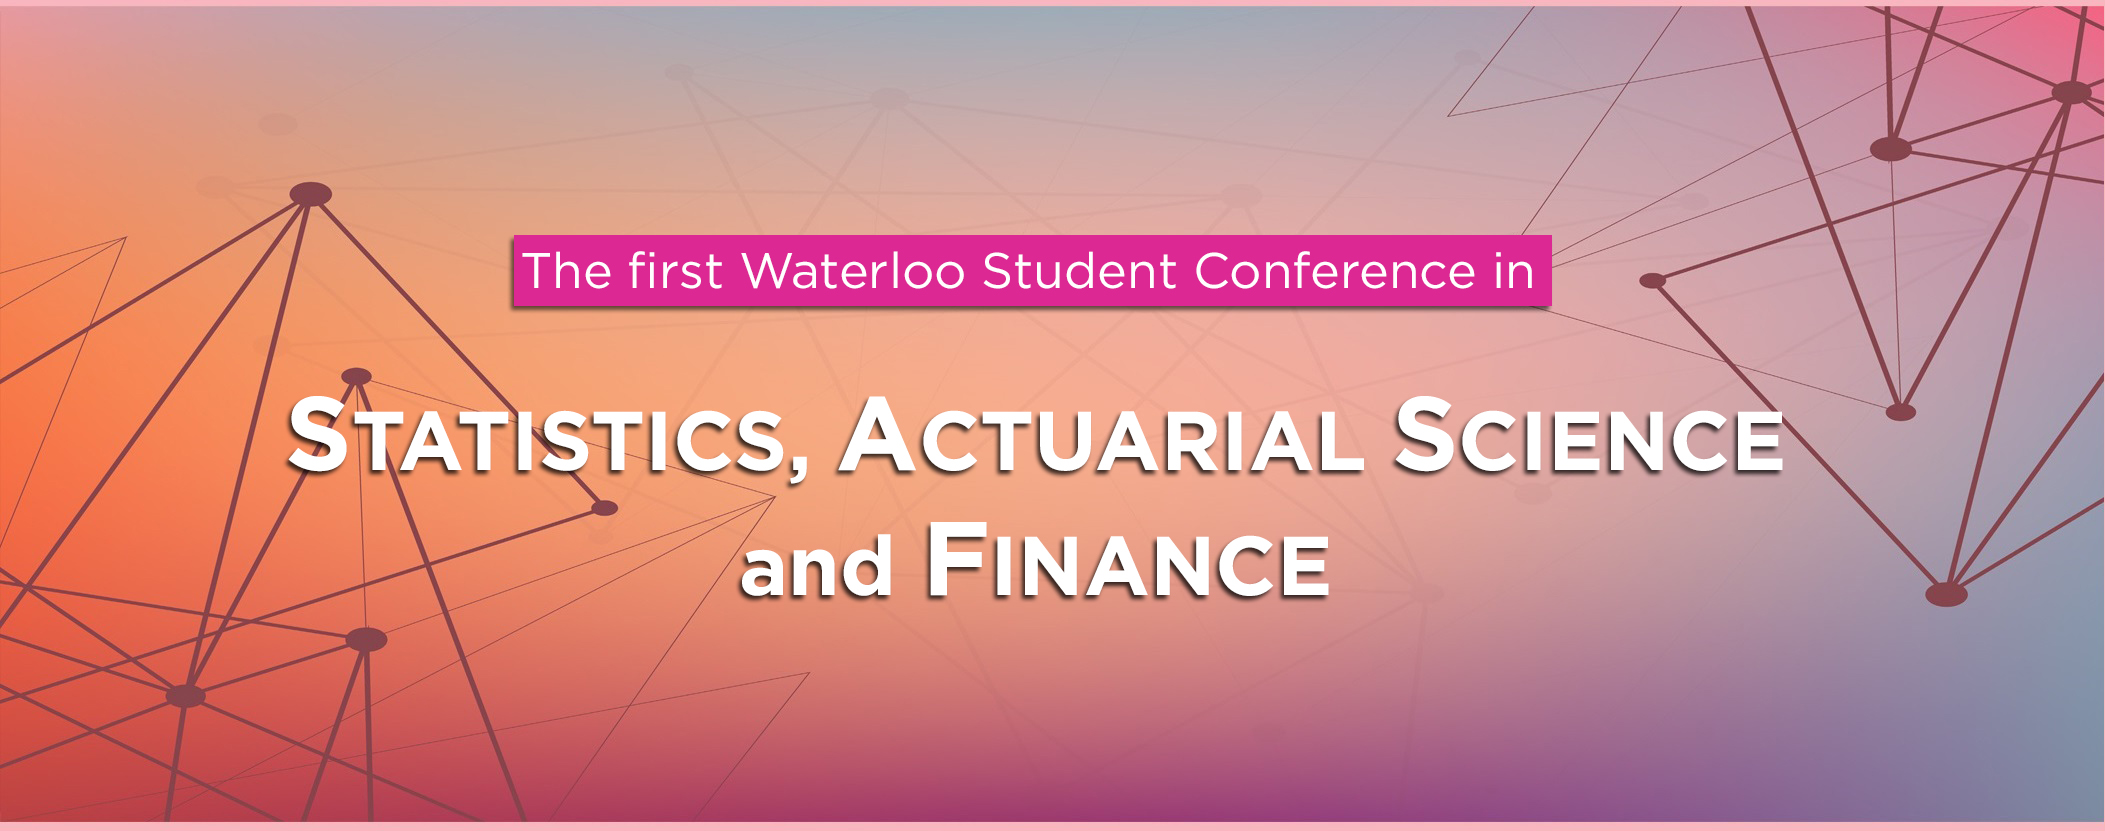 Banner with: The first Waterloo Student Conference in Statistics, Actuarial Science, and Finance